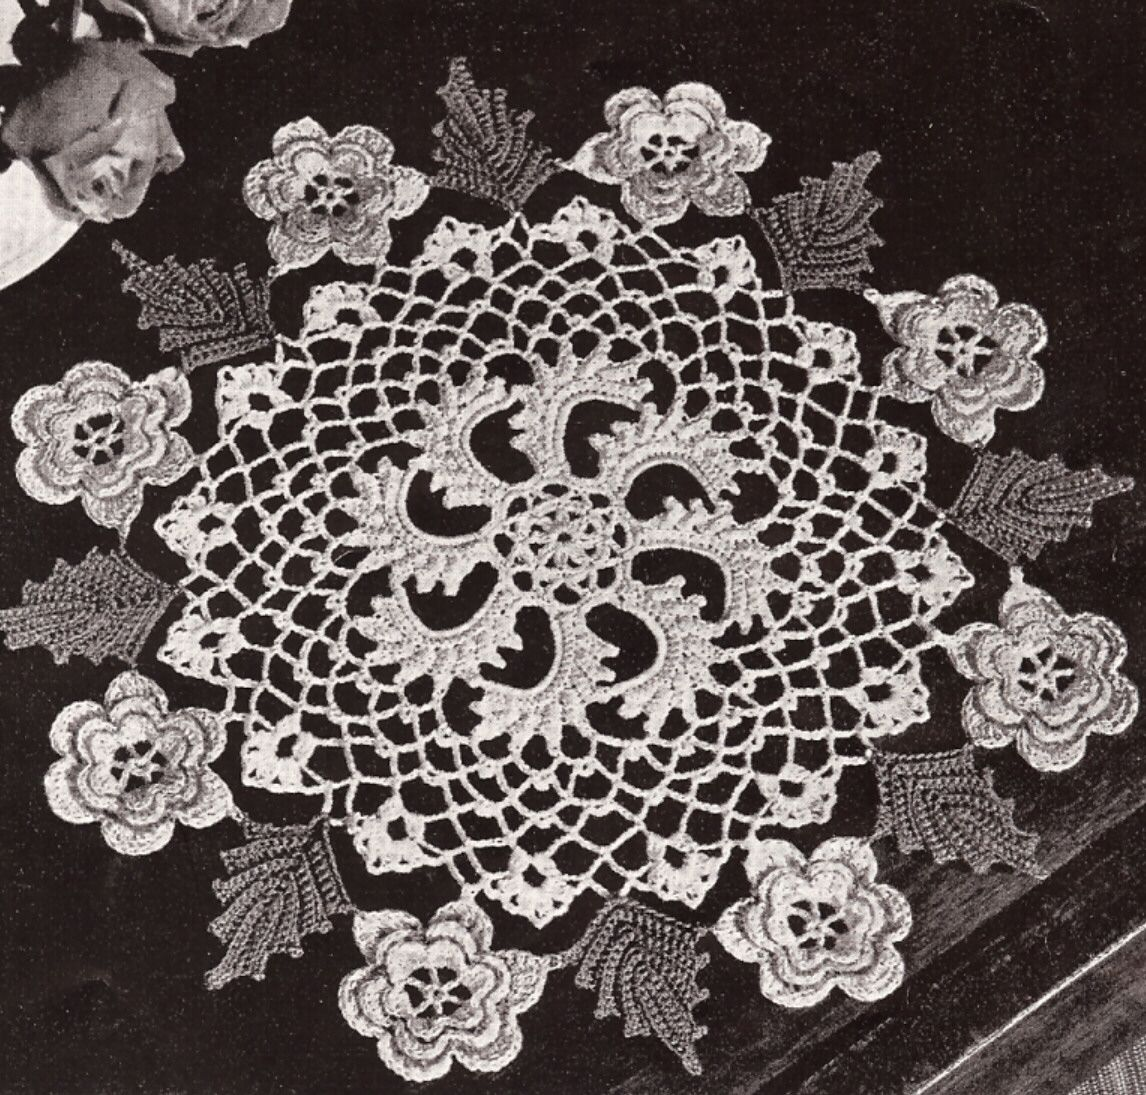 Vintage Crochet Pattern To Make Irish Rose Flower Doily Centerpiece Diagram Flowers 4 Patterns Free Crocheted And